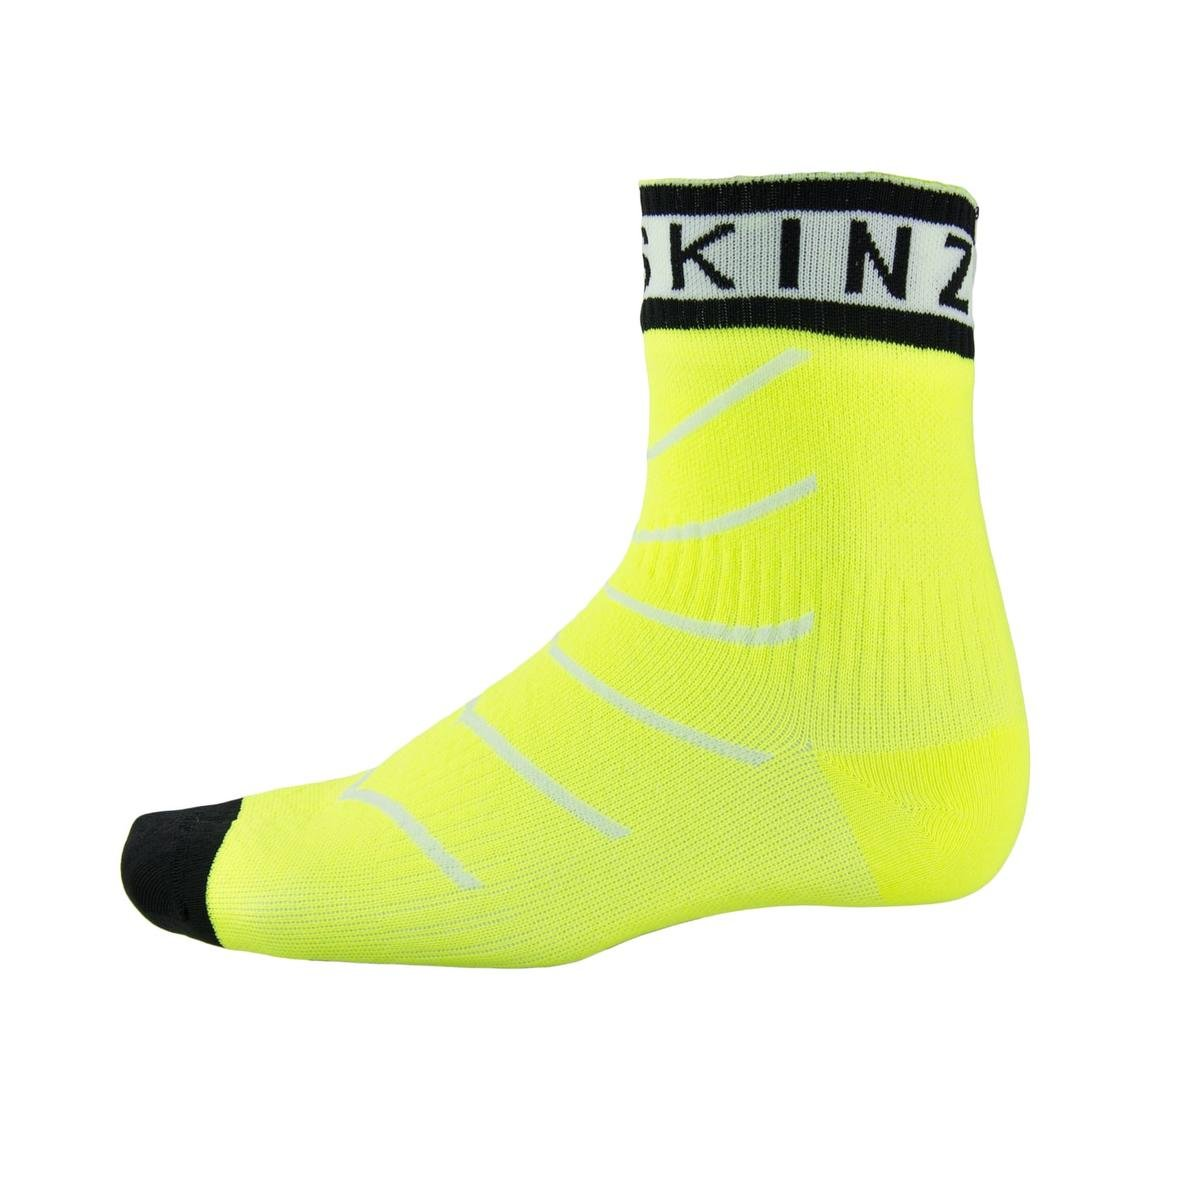 SEALSKINZ Super Thin Pro Ankle Sock with Hydrostop Neon Yellow/White/Black, M - Men's by SEALSKINZ